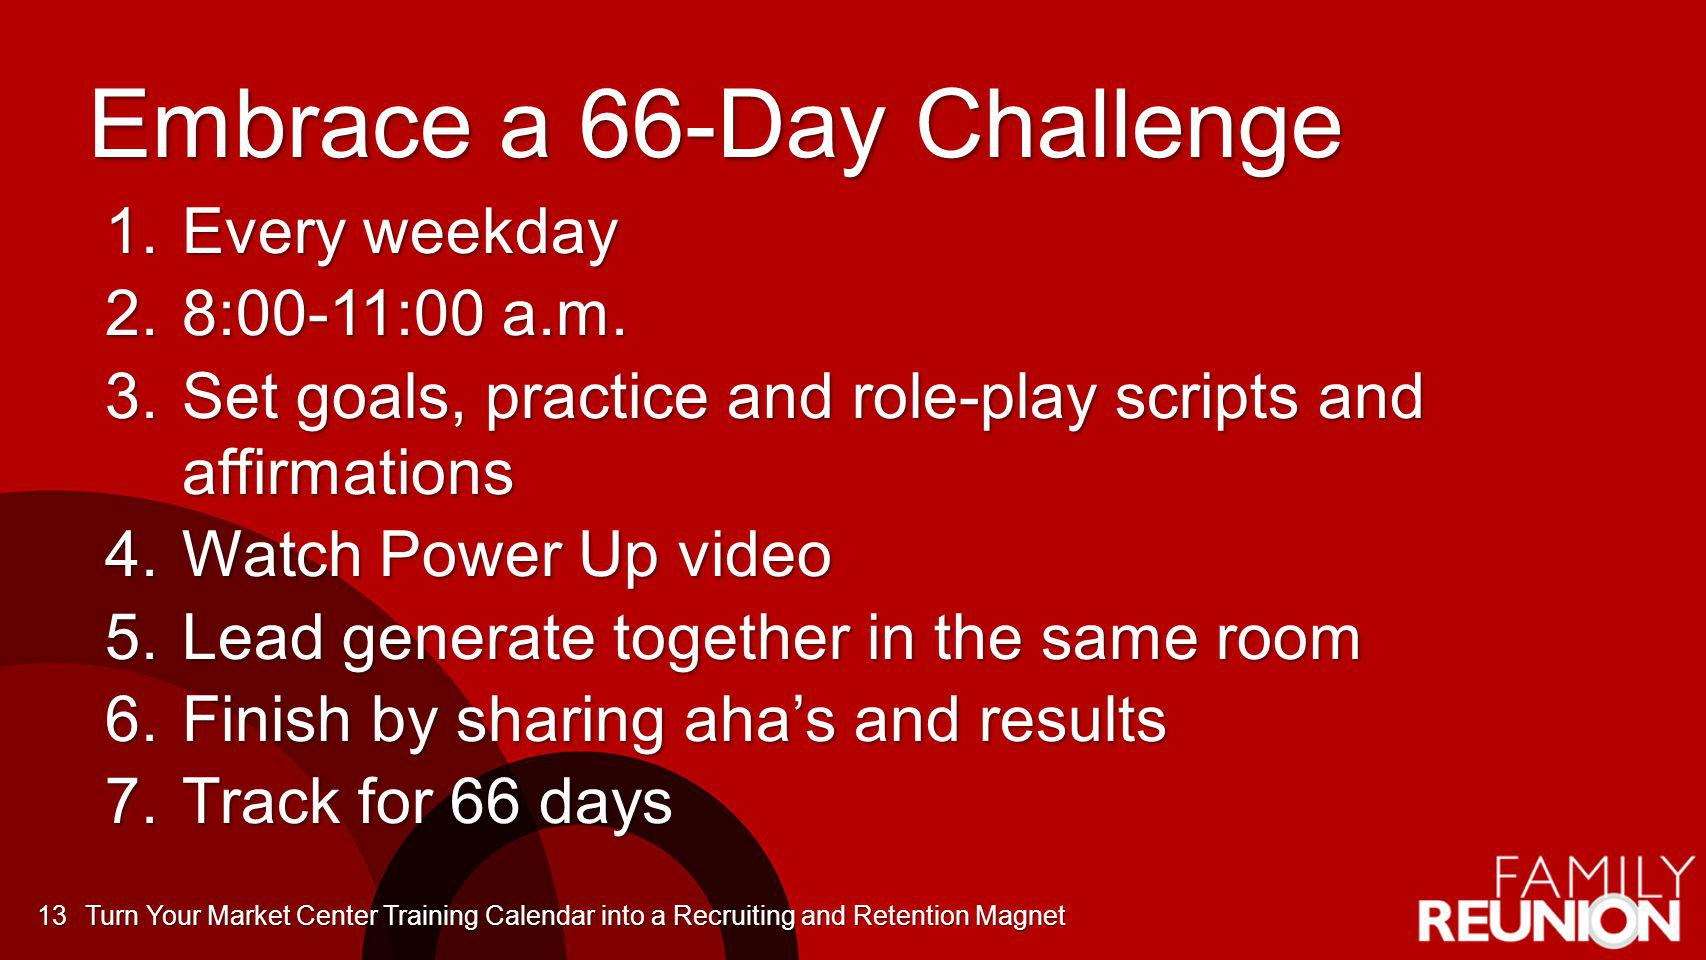 Embrace a 66-Day Challenge 1.Every weekday 2.8:00-11:00 a.m.